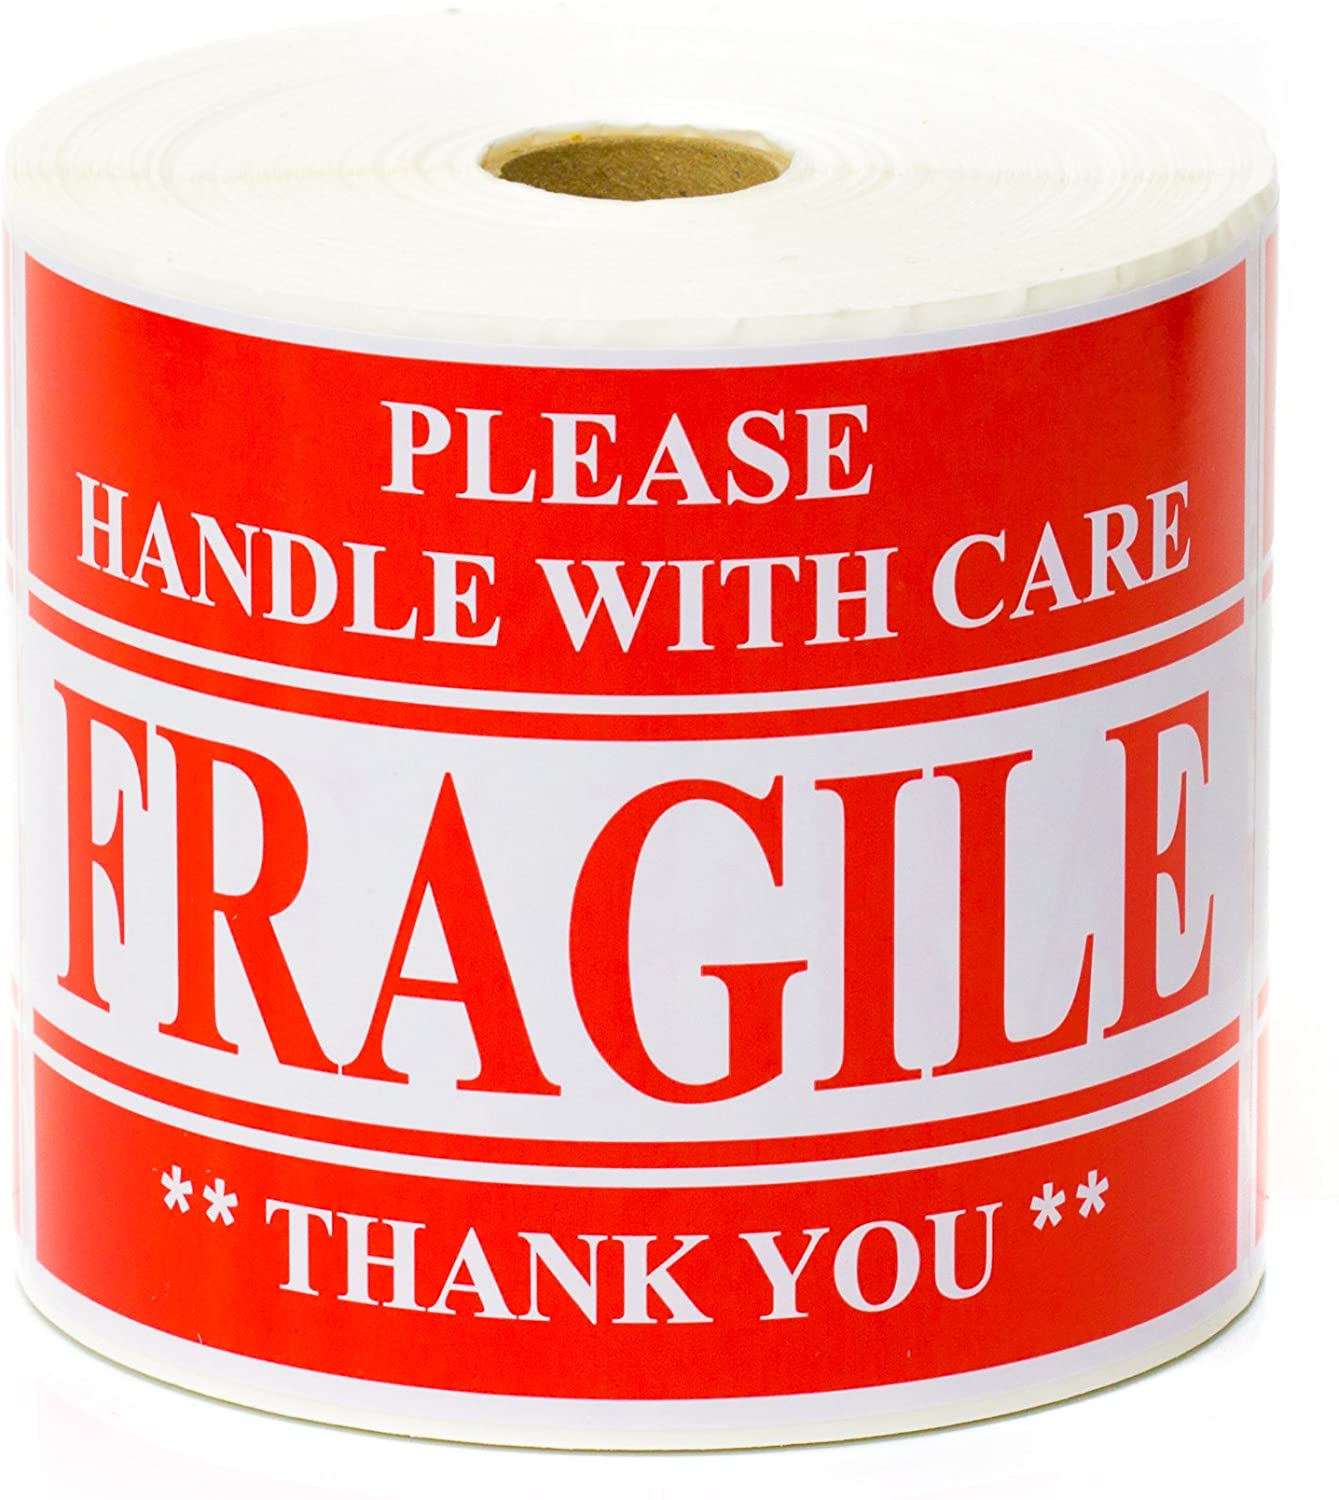 Fragile Stickers - Extra Large - Please Handle with Care Labels - 4x6 Inches - 500 Labels/Roll (1 Roll)